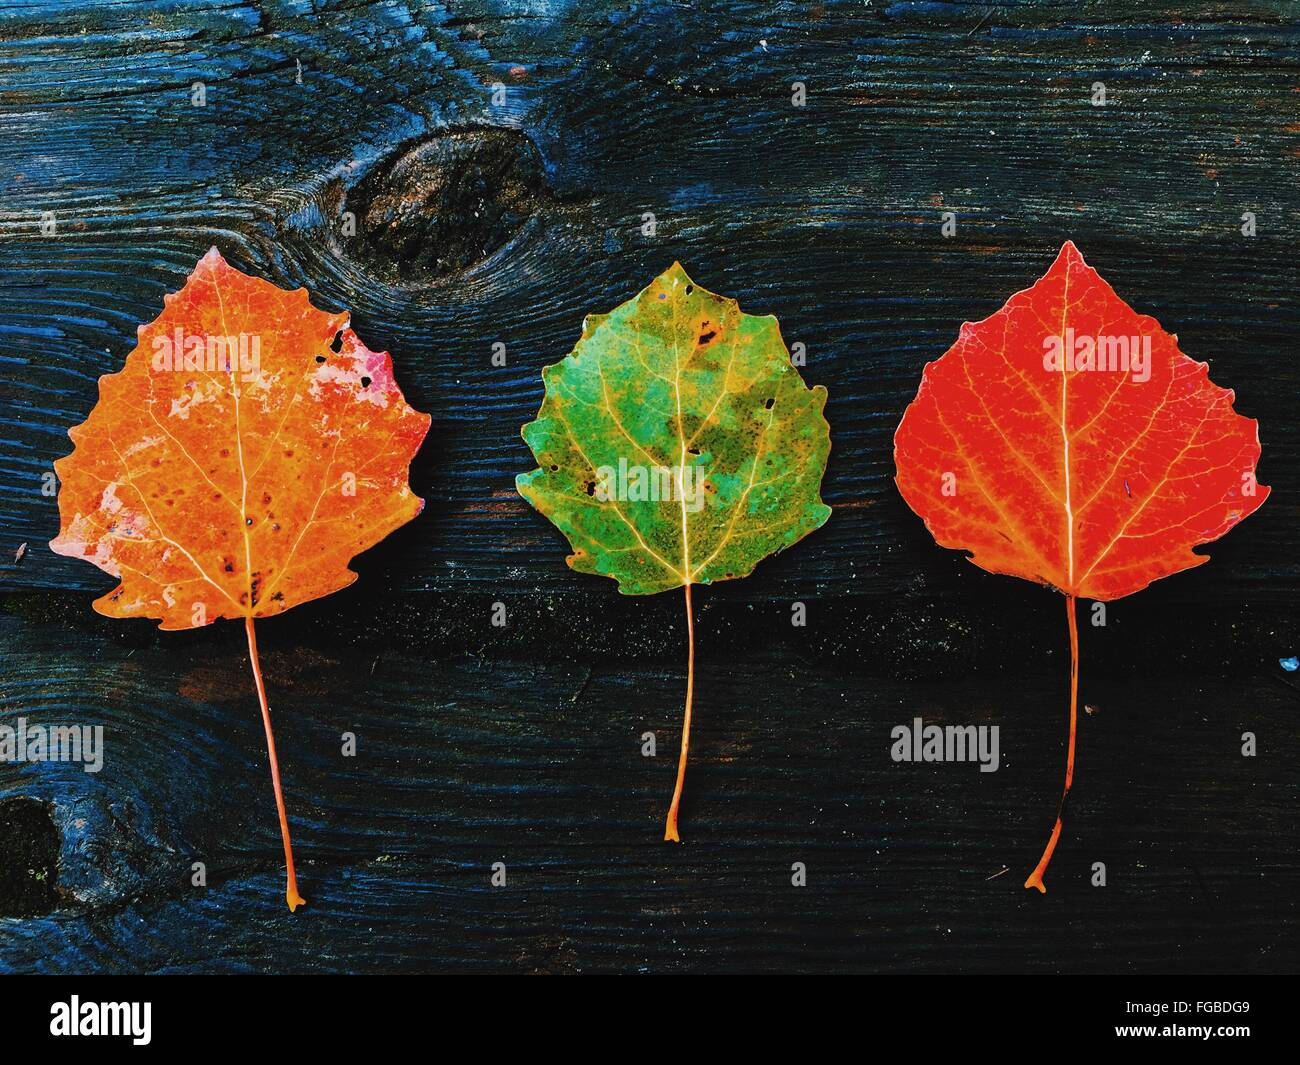 Close-Up Of Colorful Autumn Leaves On Wood - Stock Image